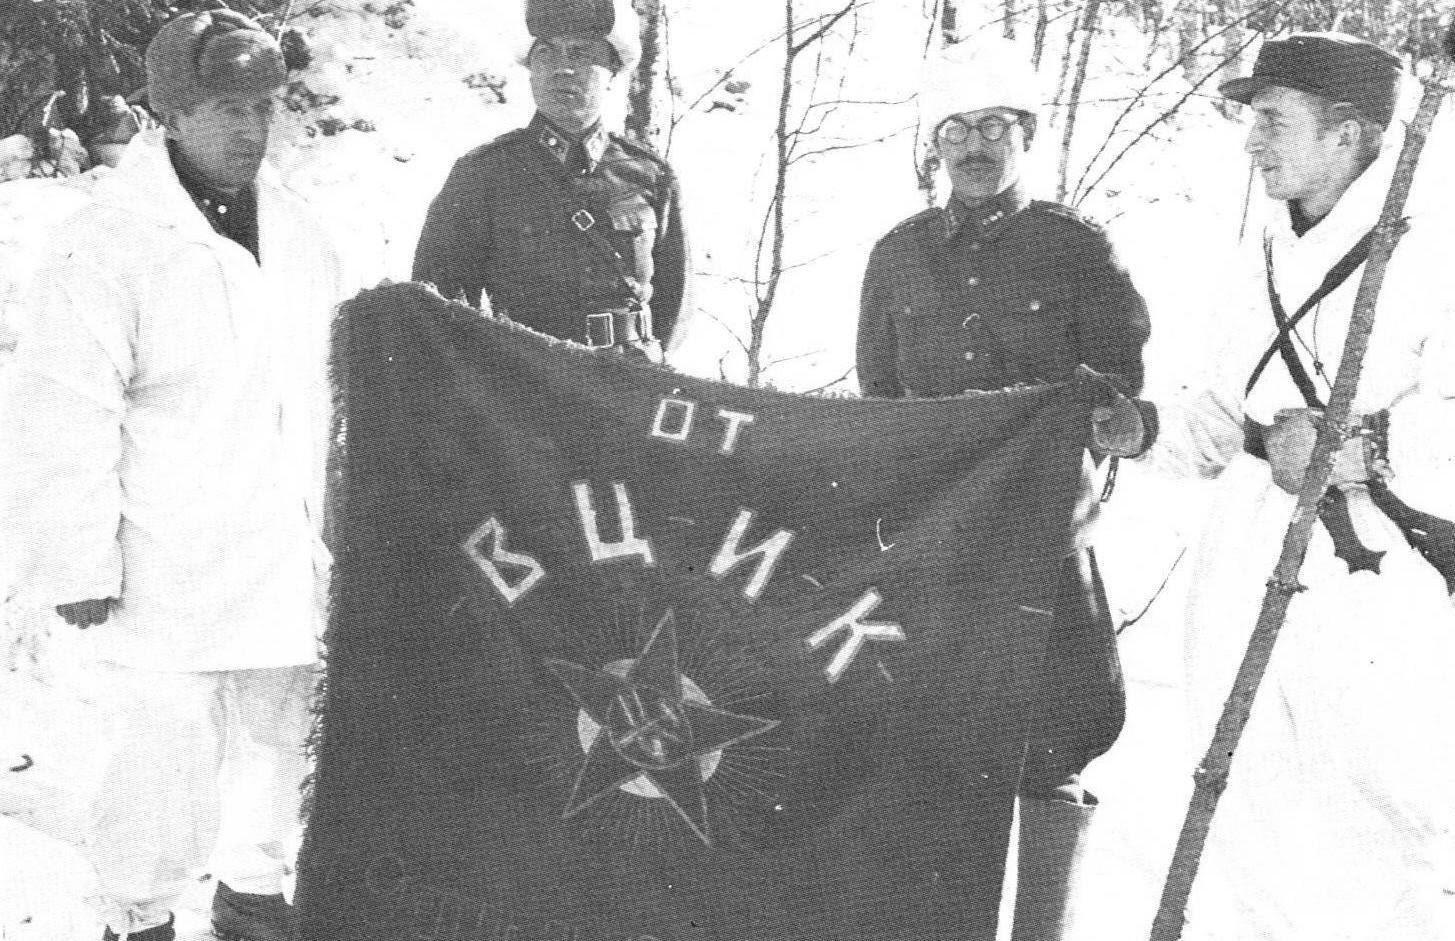 Finnish officers posing with a captured Soviet flag, Finland, 1939-1940